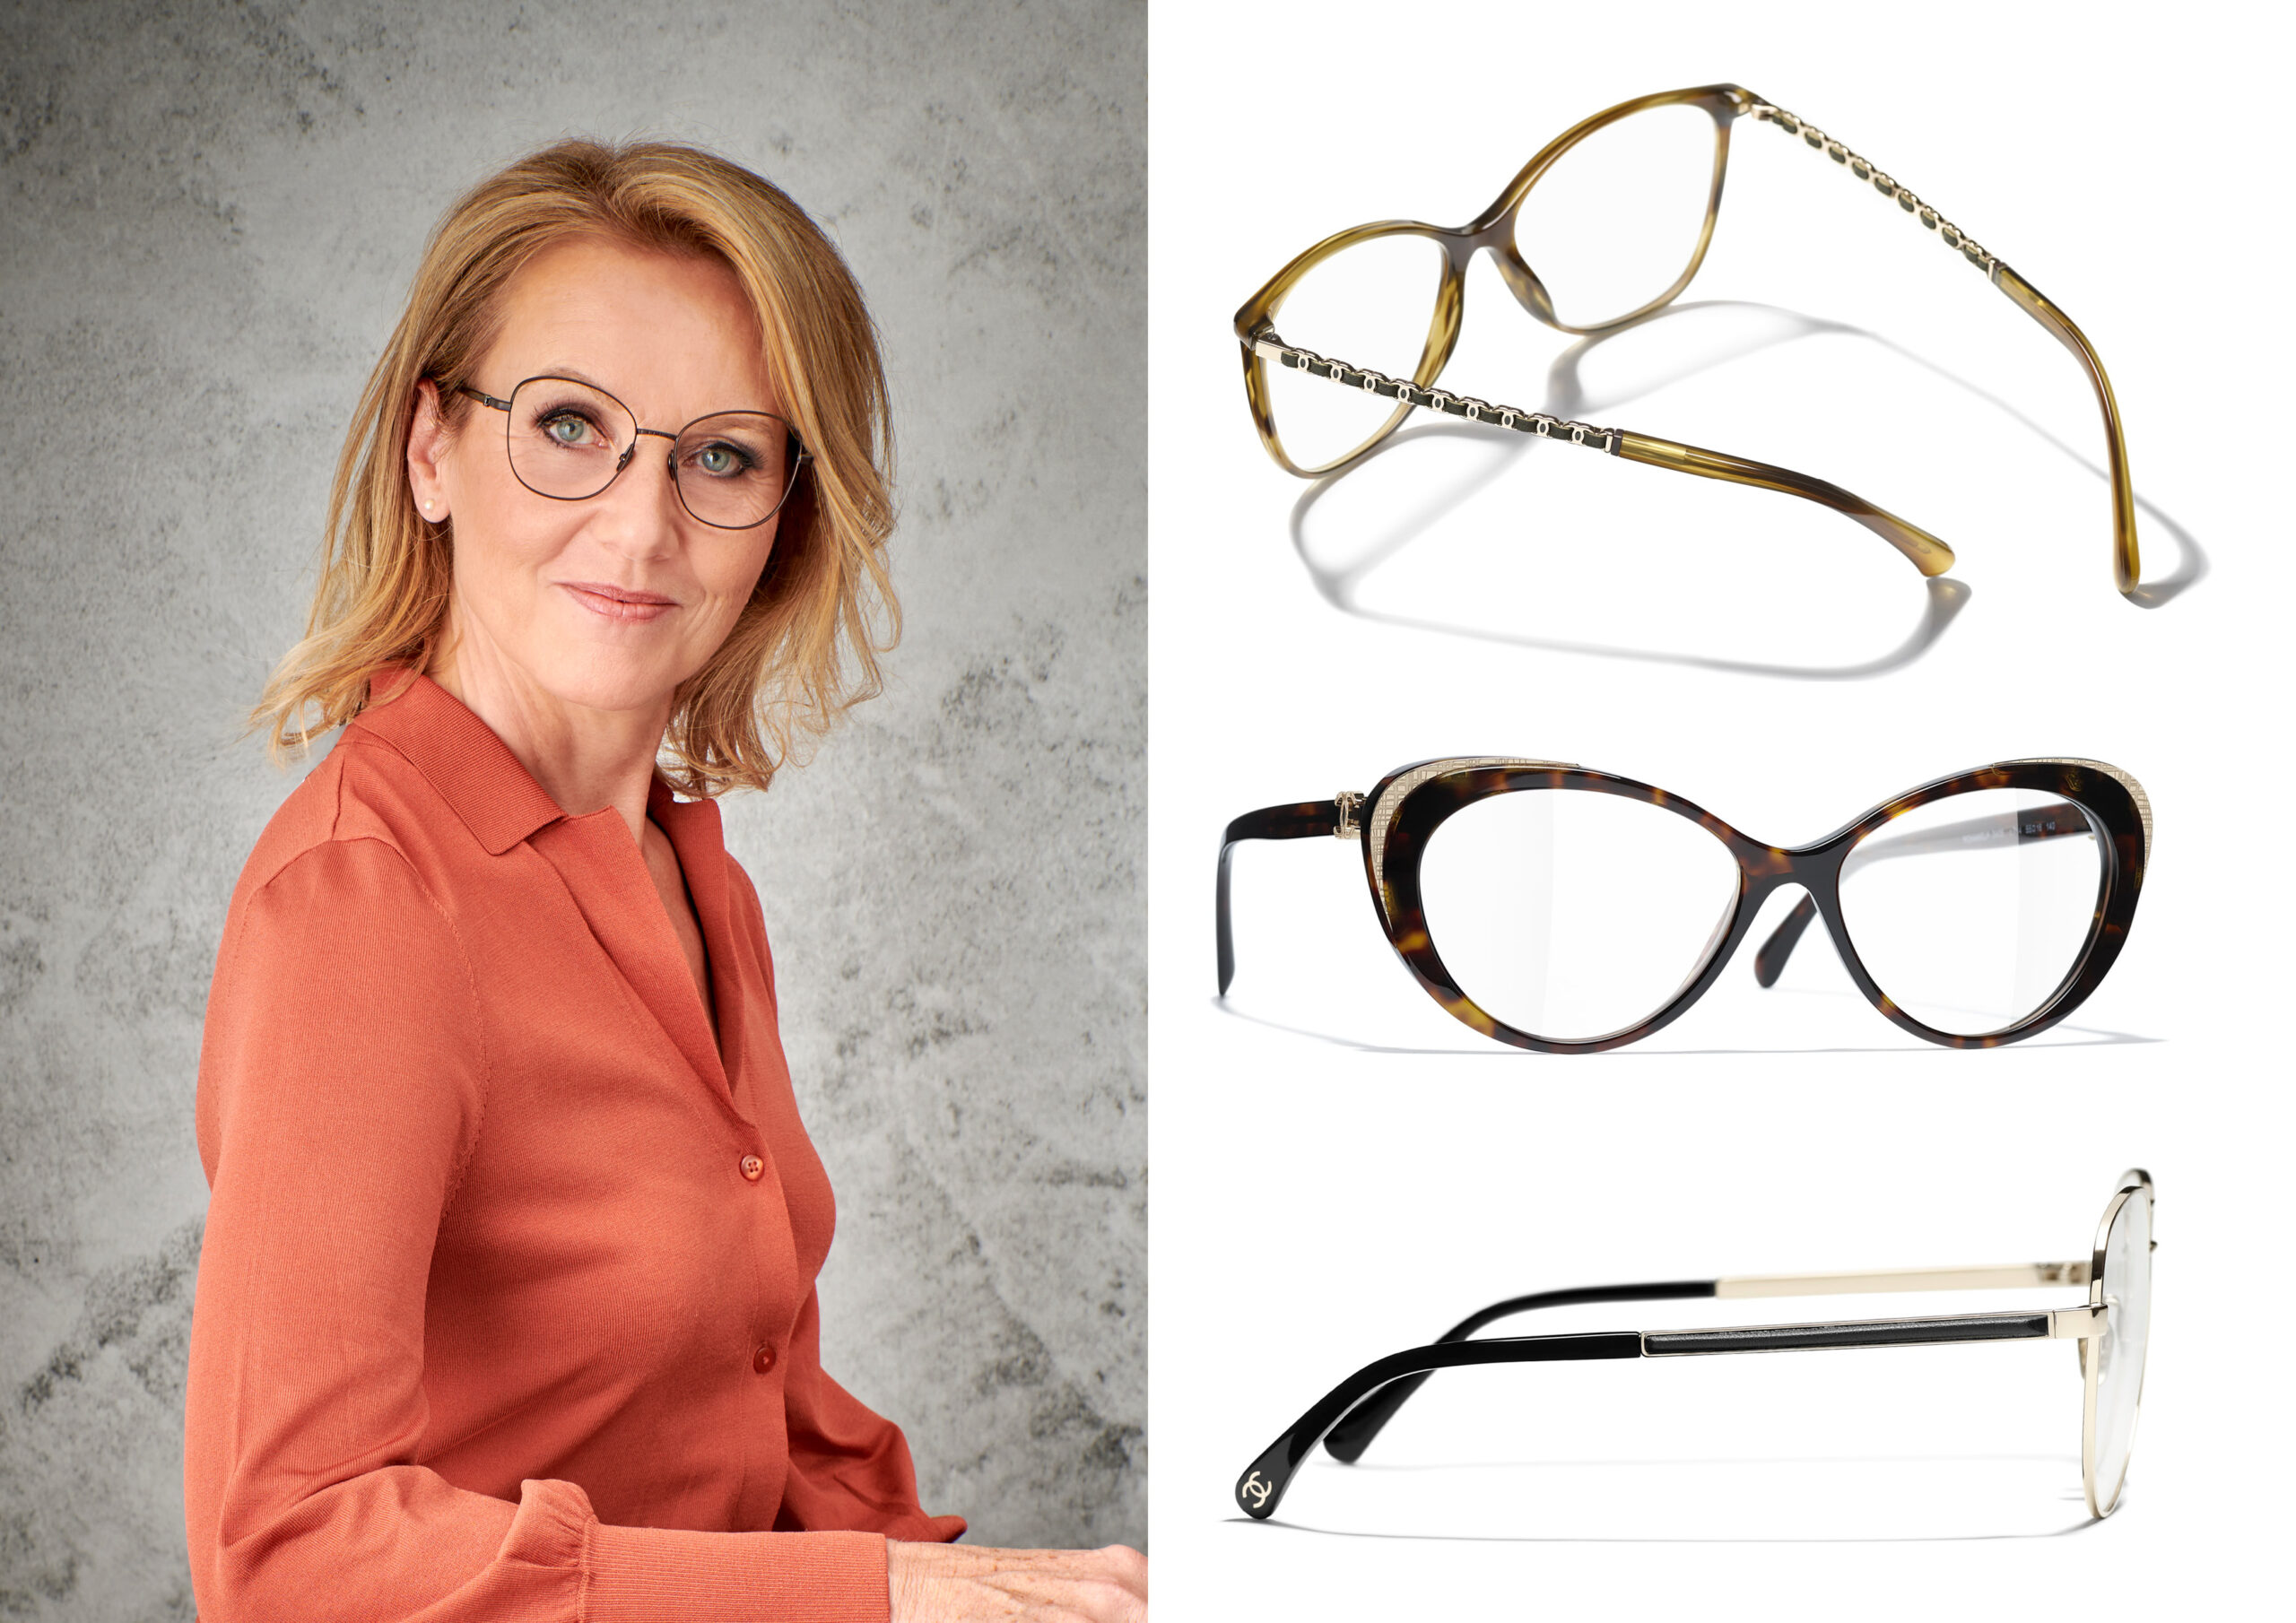 Chanel eyewear herfst/winter 2020-2021 - Optiek Lammerant Deinze